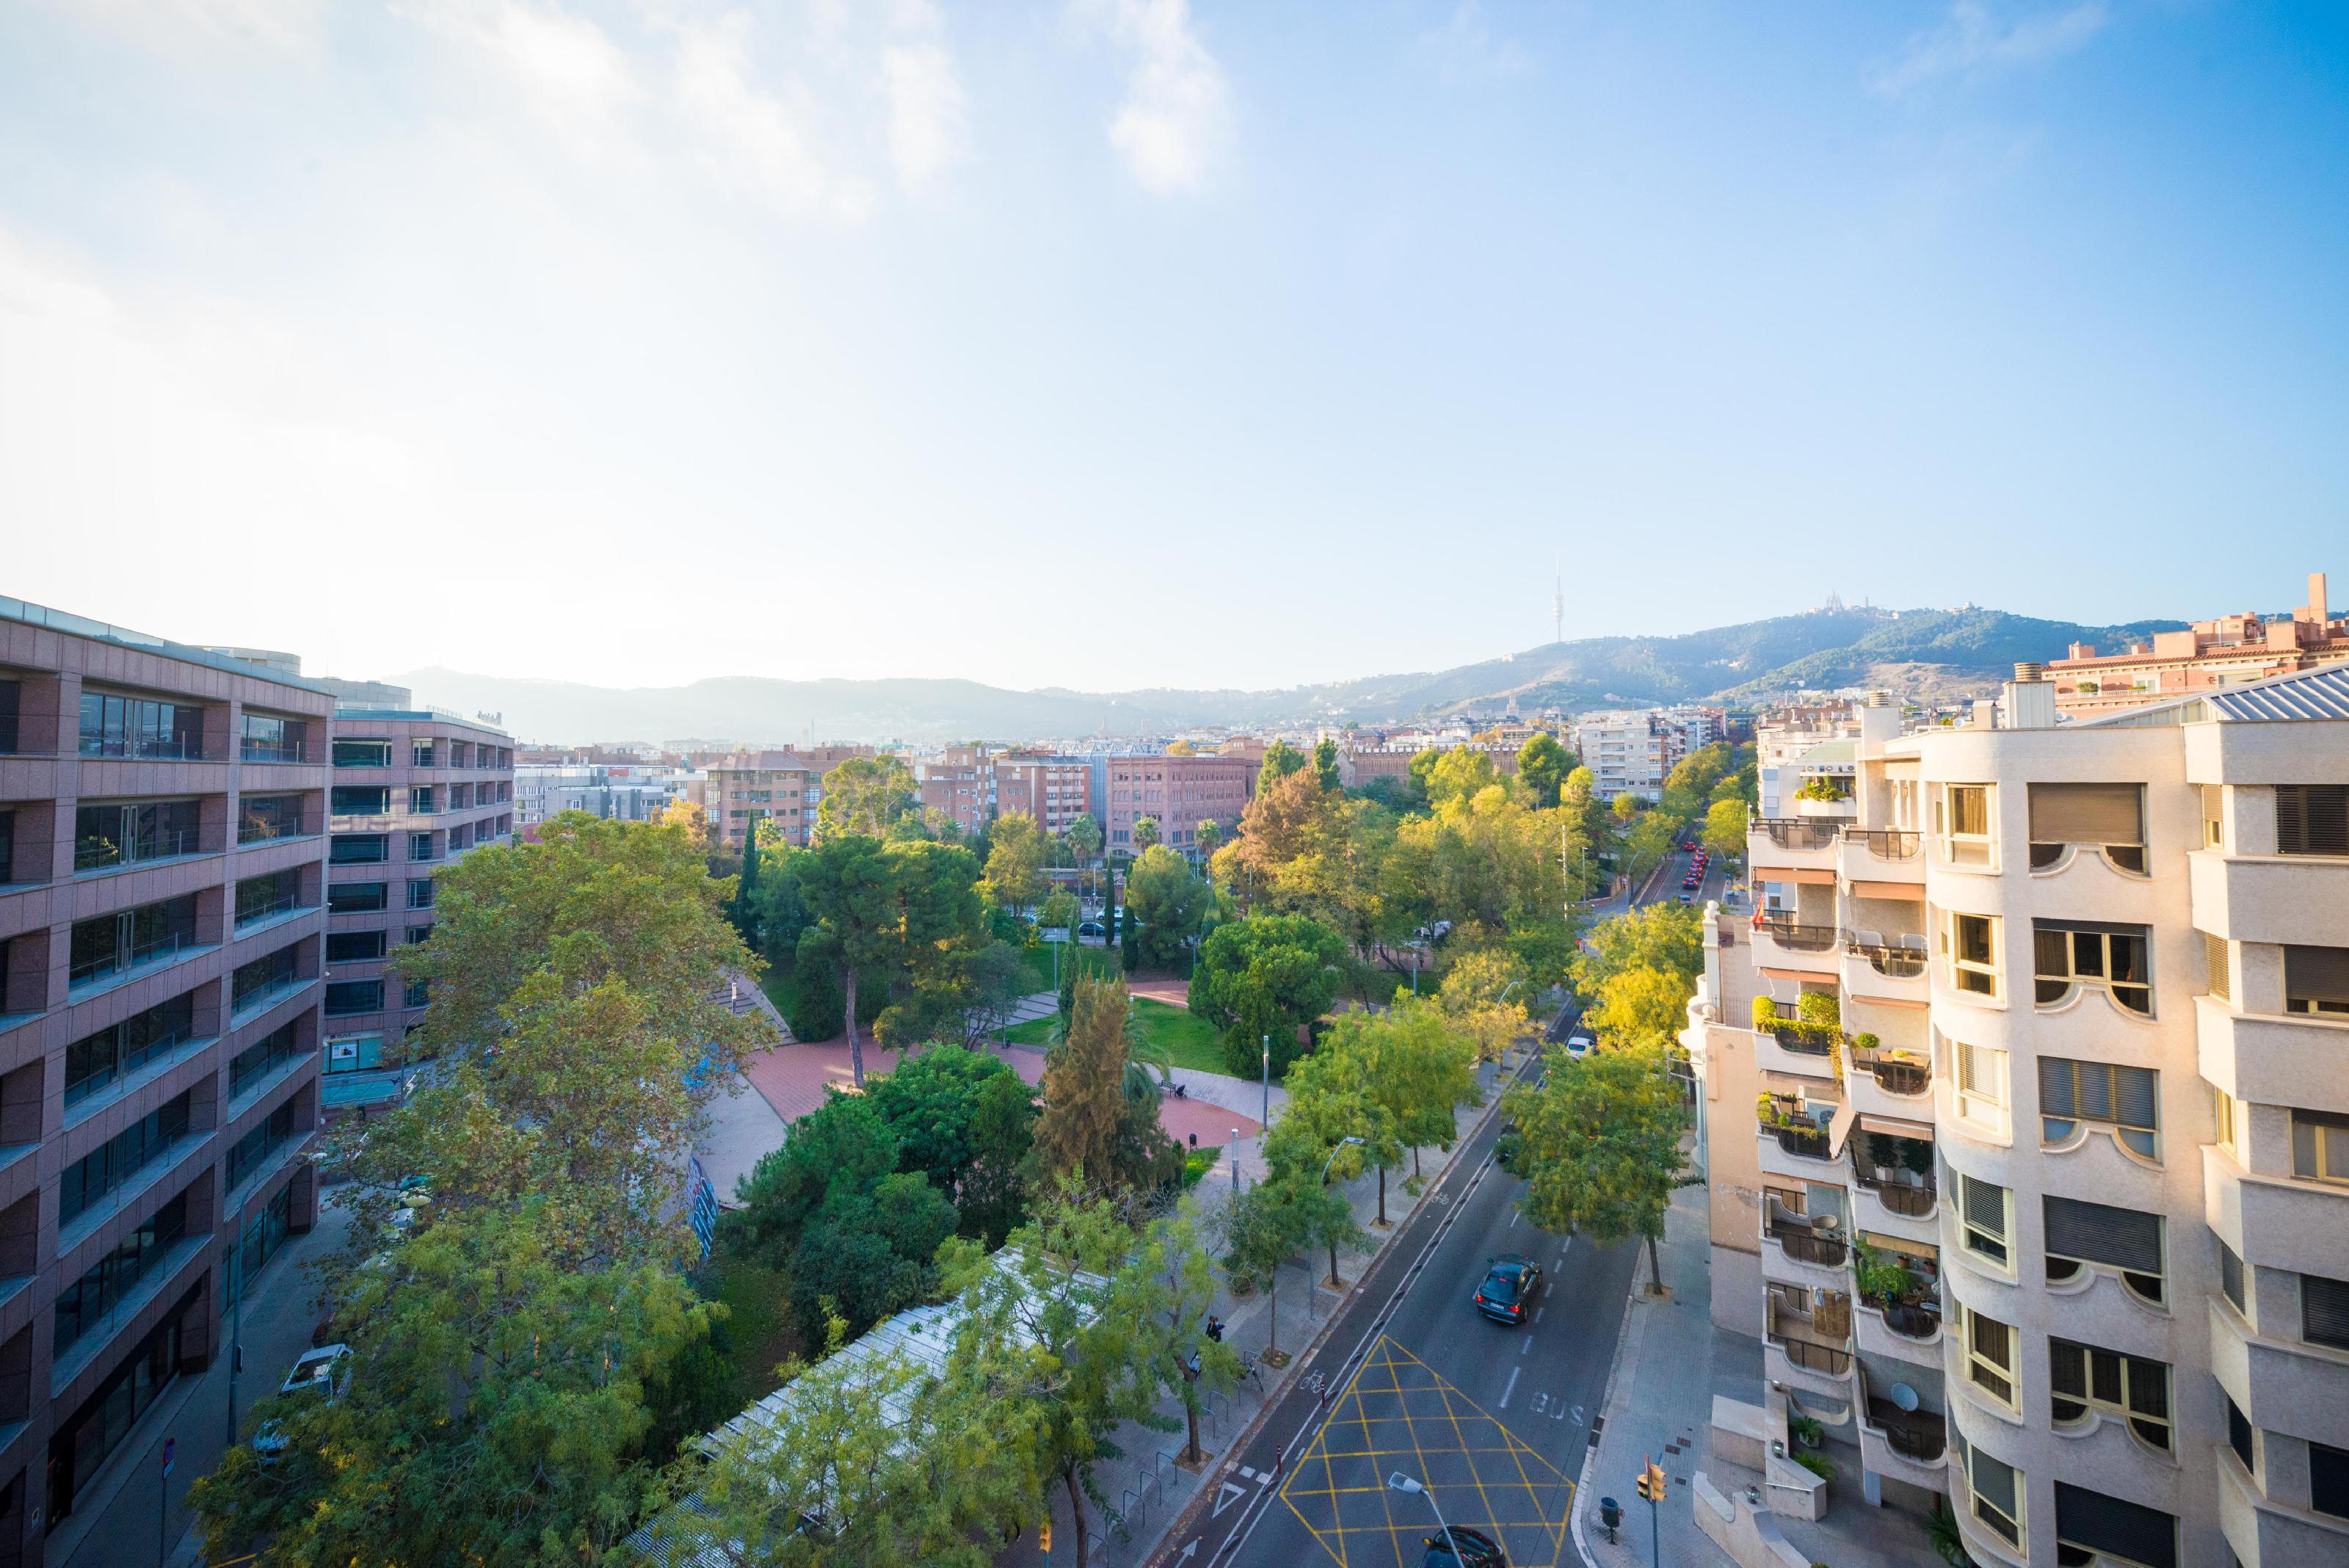 243891 Penthouse for sale in Sarrià-Sant Gervasi, Sant Gervasi-Galvany 11